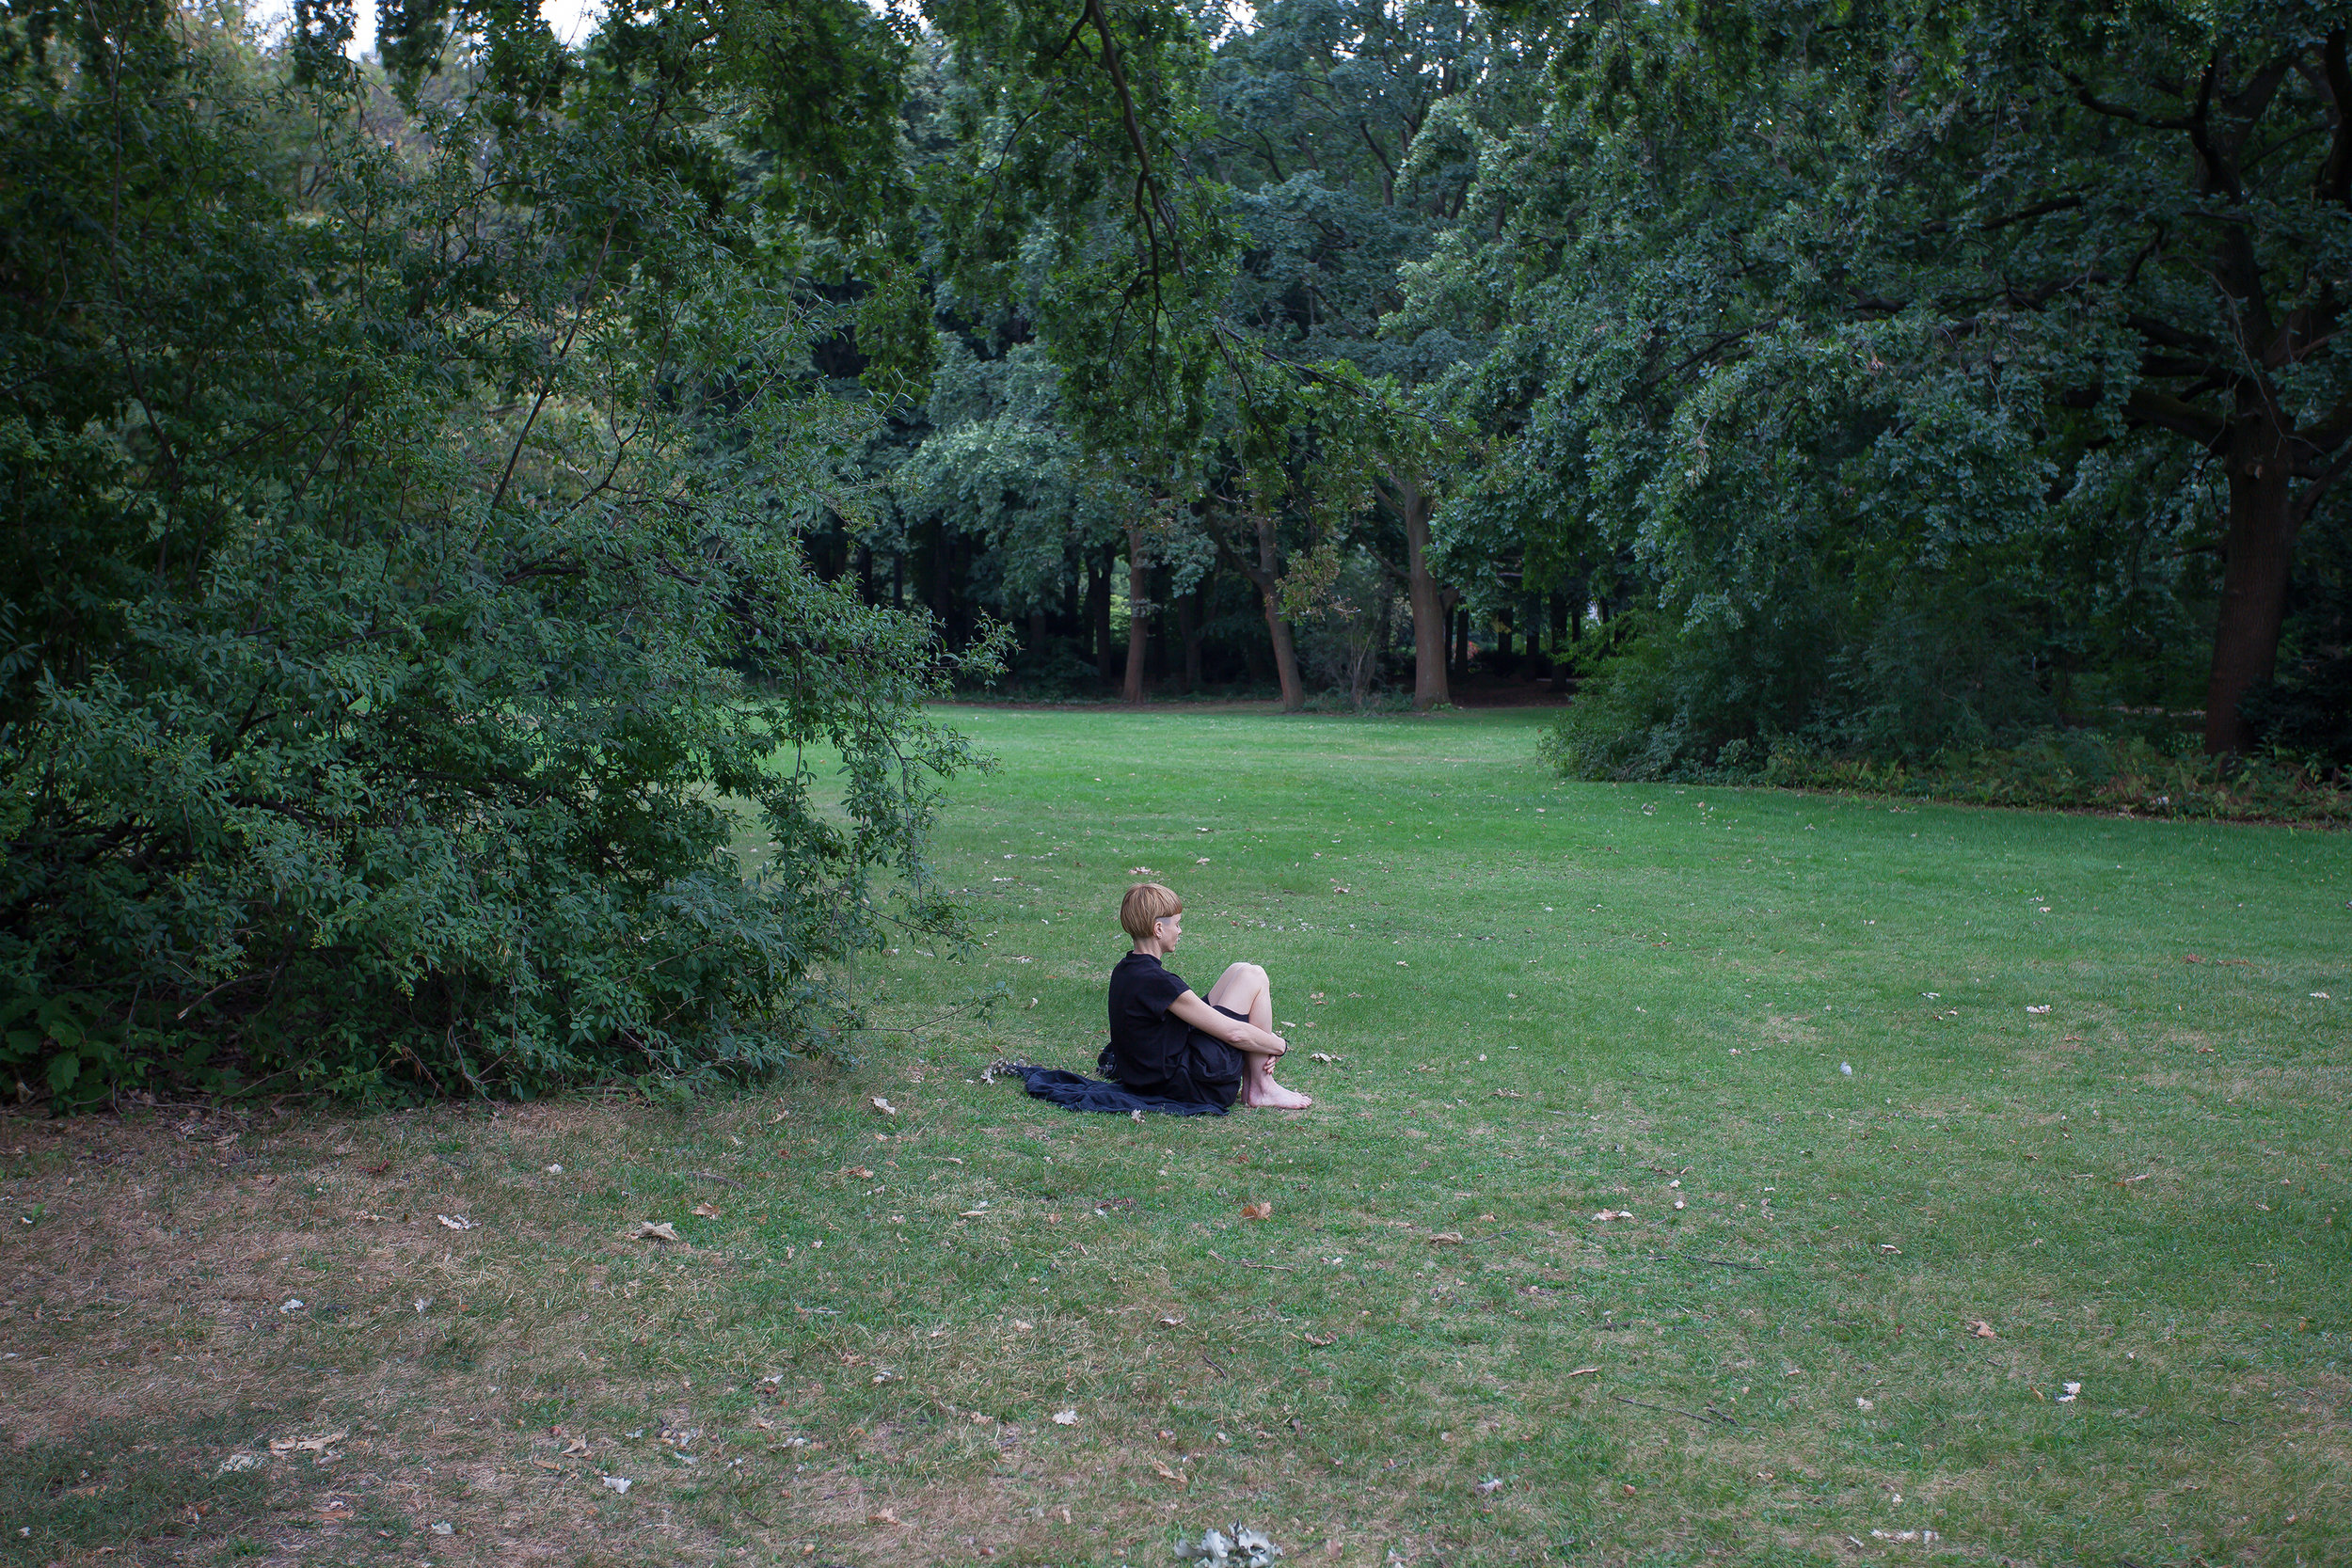 Documentation: forest bathing and sensory tuning experiences in Tiergarten, Berlin. 2018